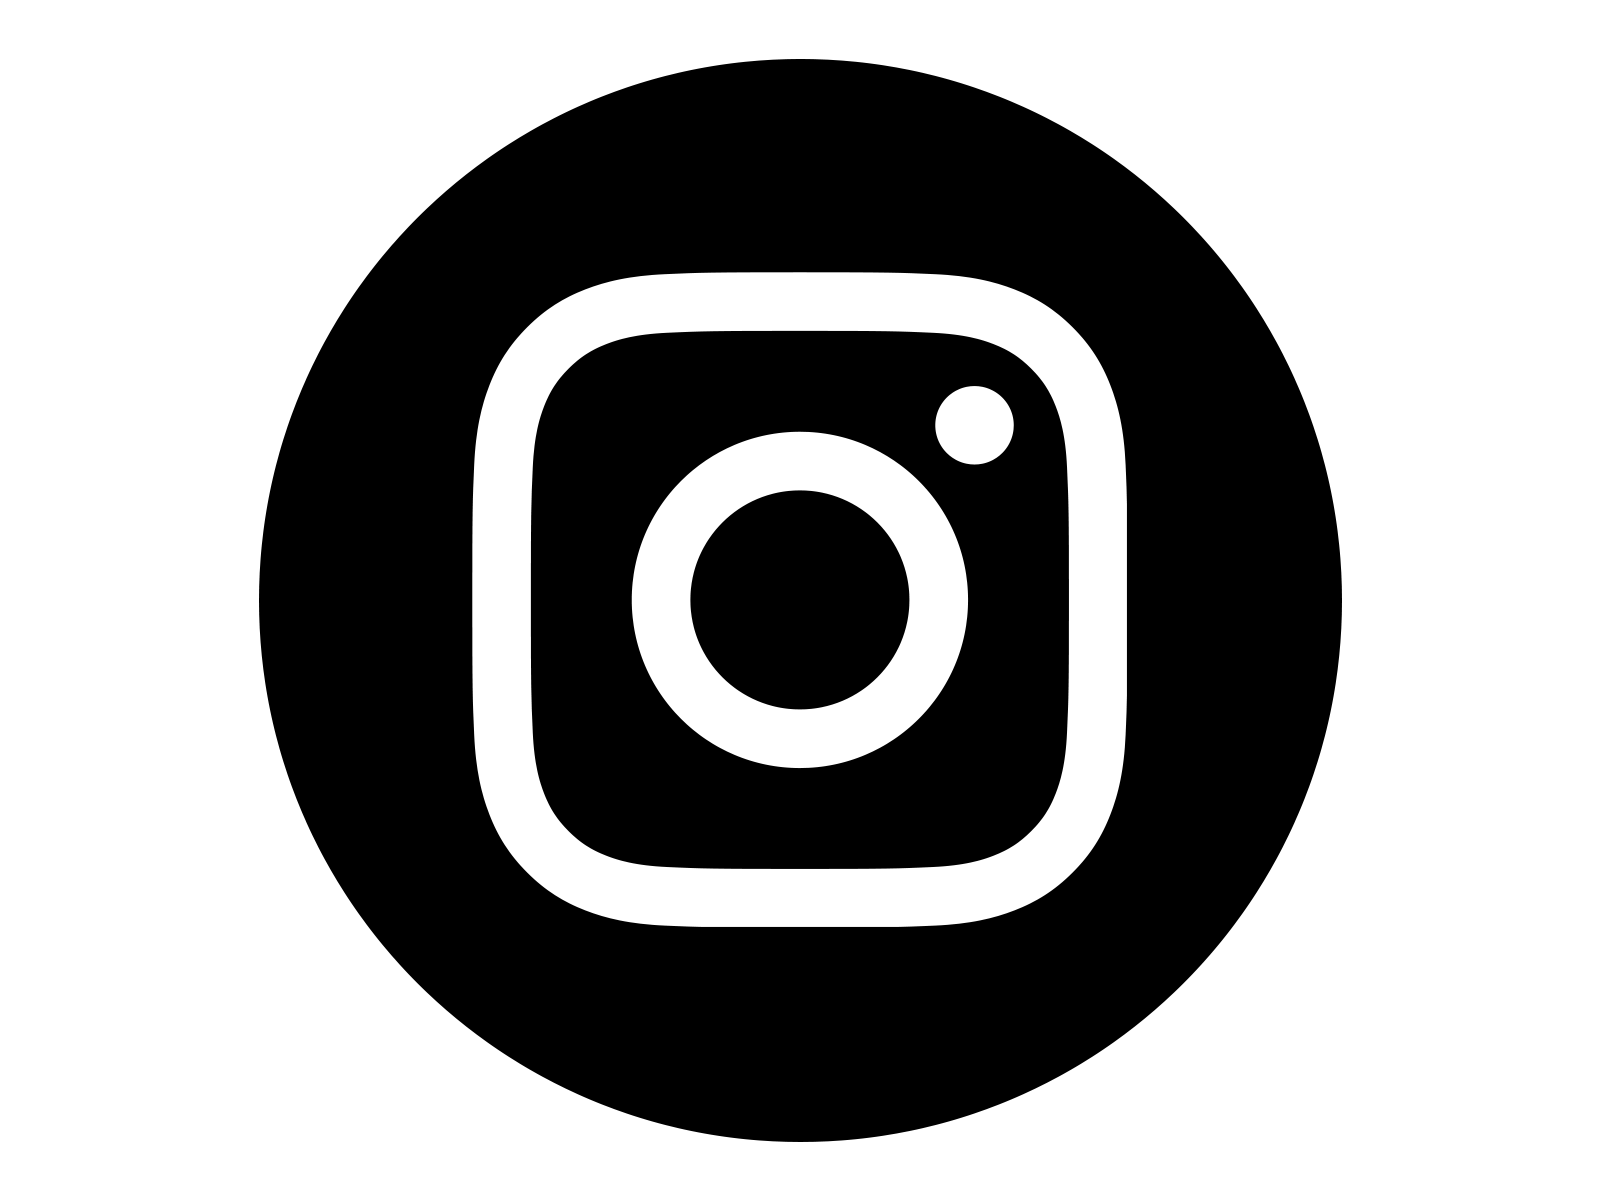 Instagram Icon White On Black Circle Objek Gambar Gambar Seni Gelap